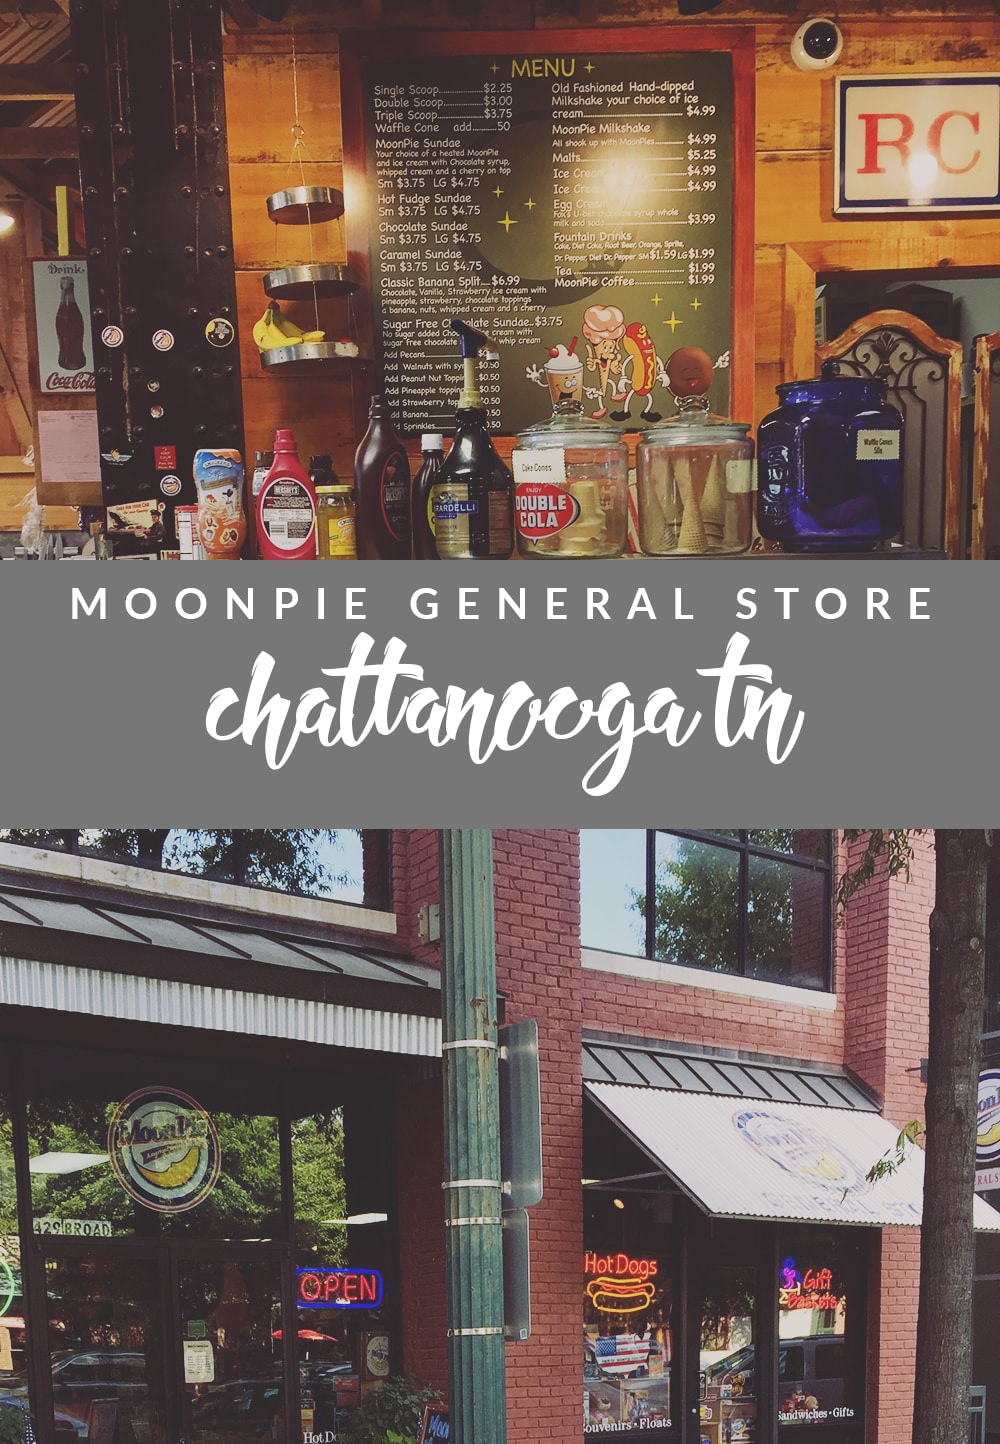 Need a sweet treat when you're in TN? Visit the MoonPie General Store in Chattanooga! Delicious food and moon pies galore!